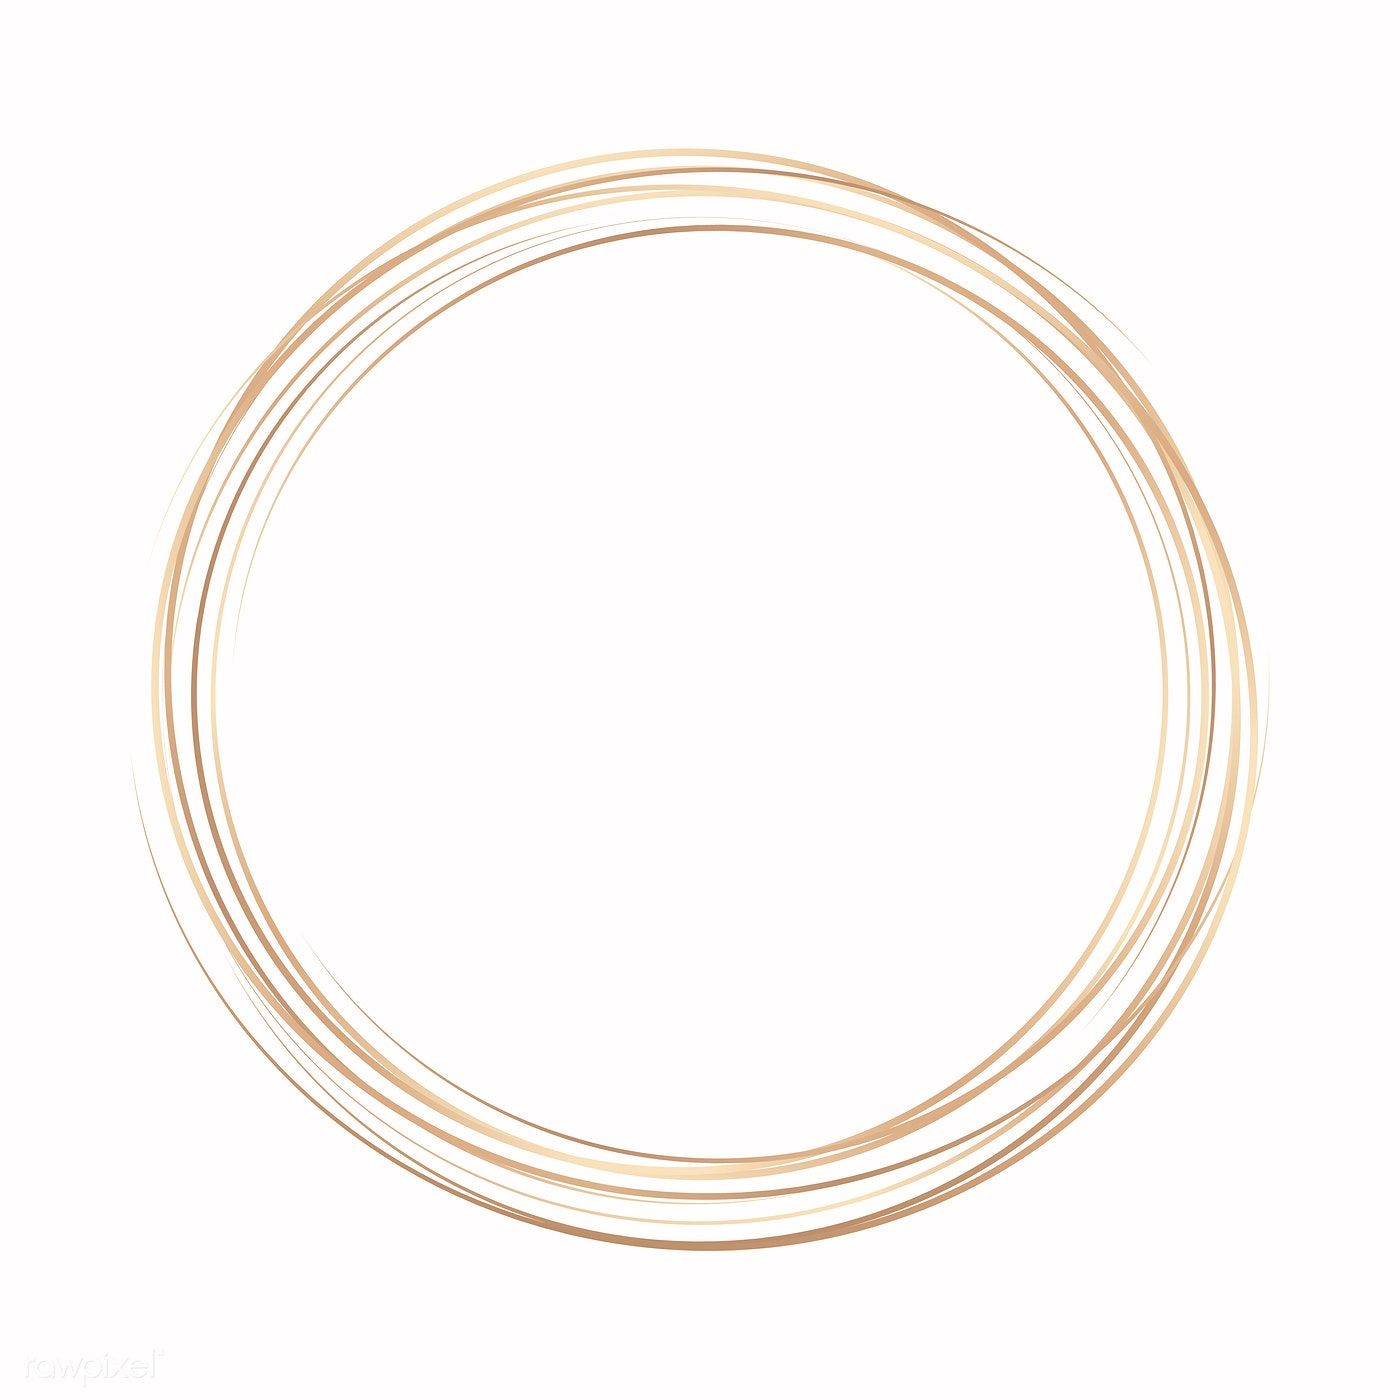 Download Premium Vector Of Gold Circle Frame On A Pastel Pink Background Gold Circle Frames Circle Frames Vector Free